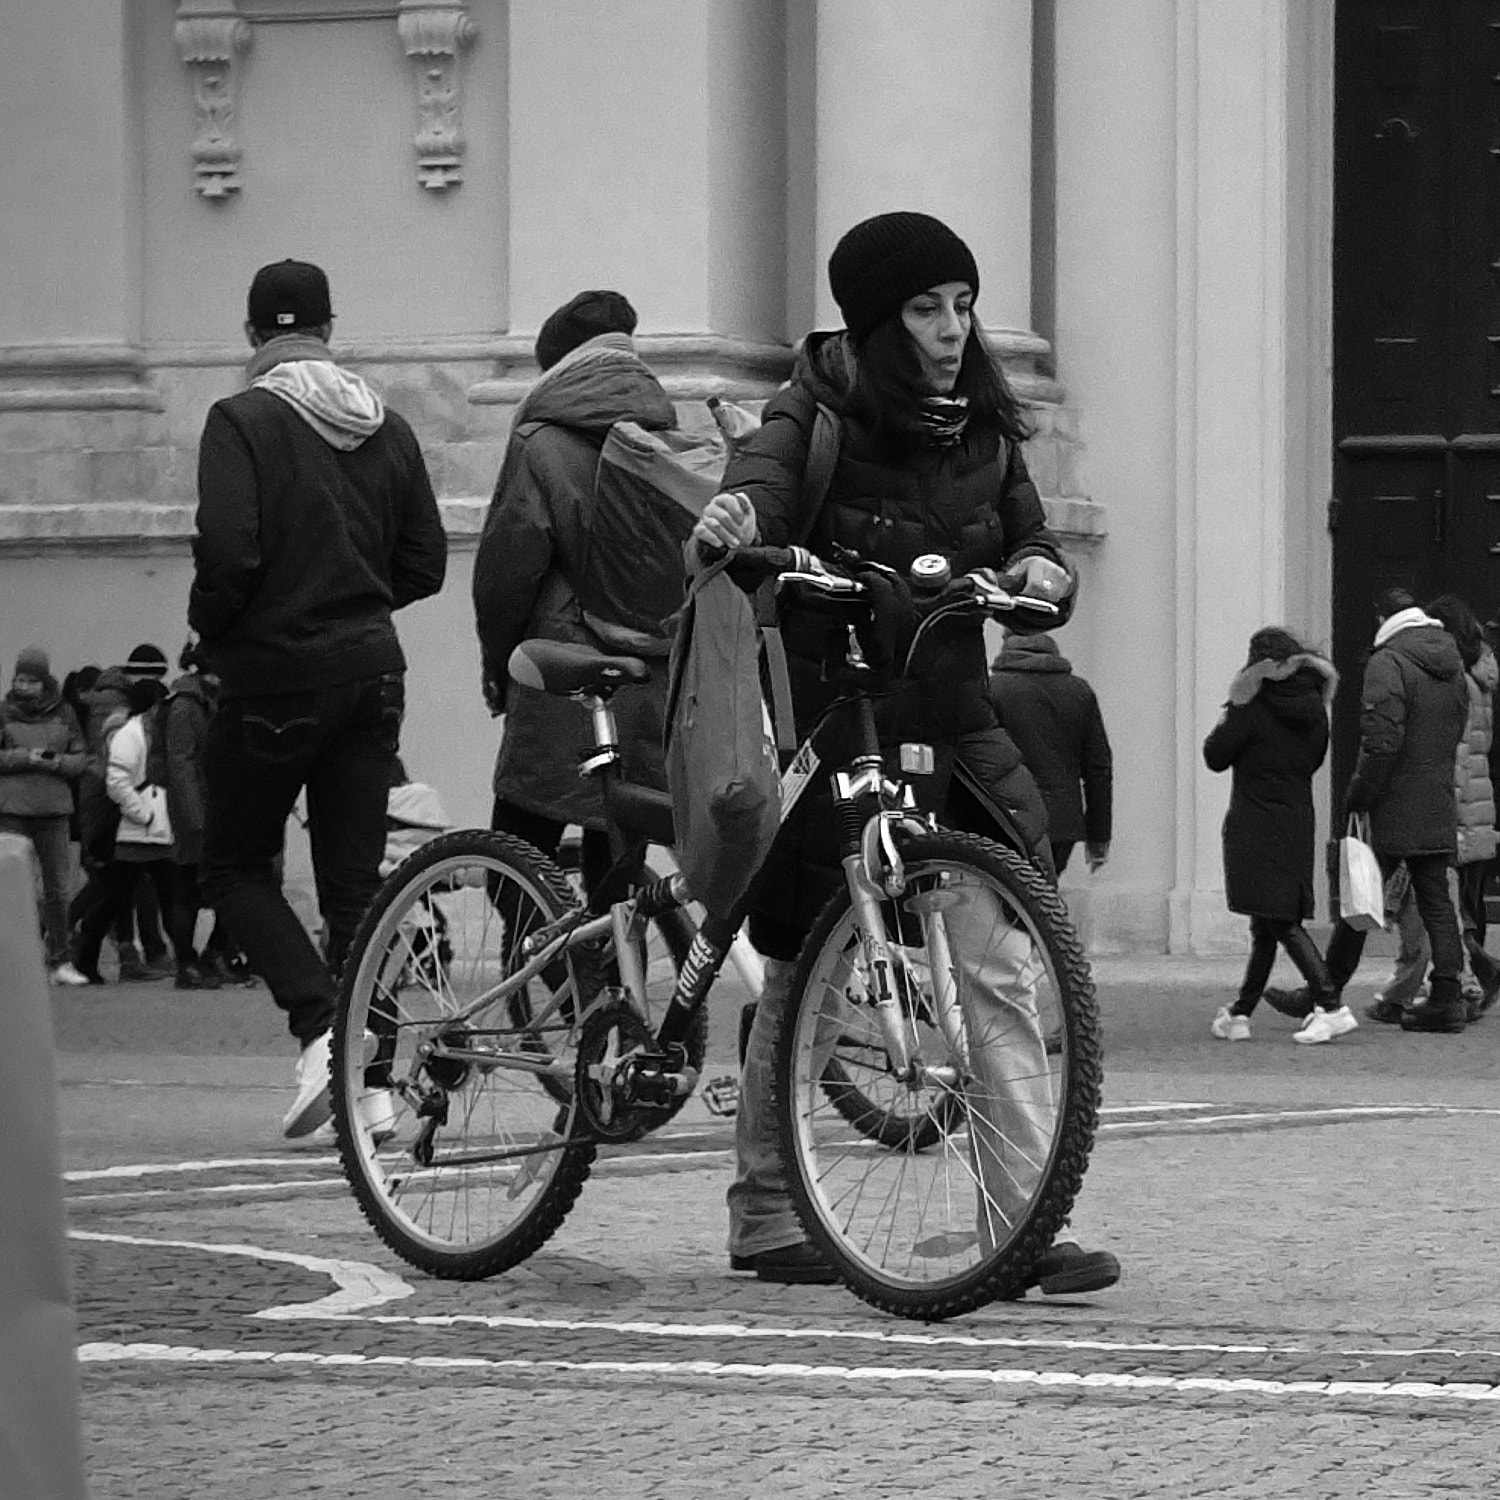 Bypassers going about their business in the Odeonsplatz, Munich, Germany